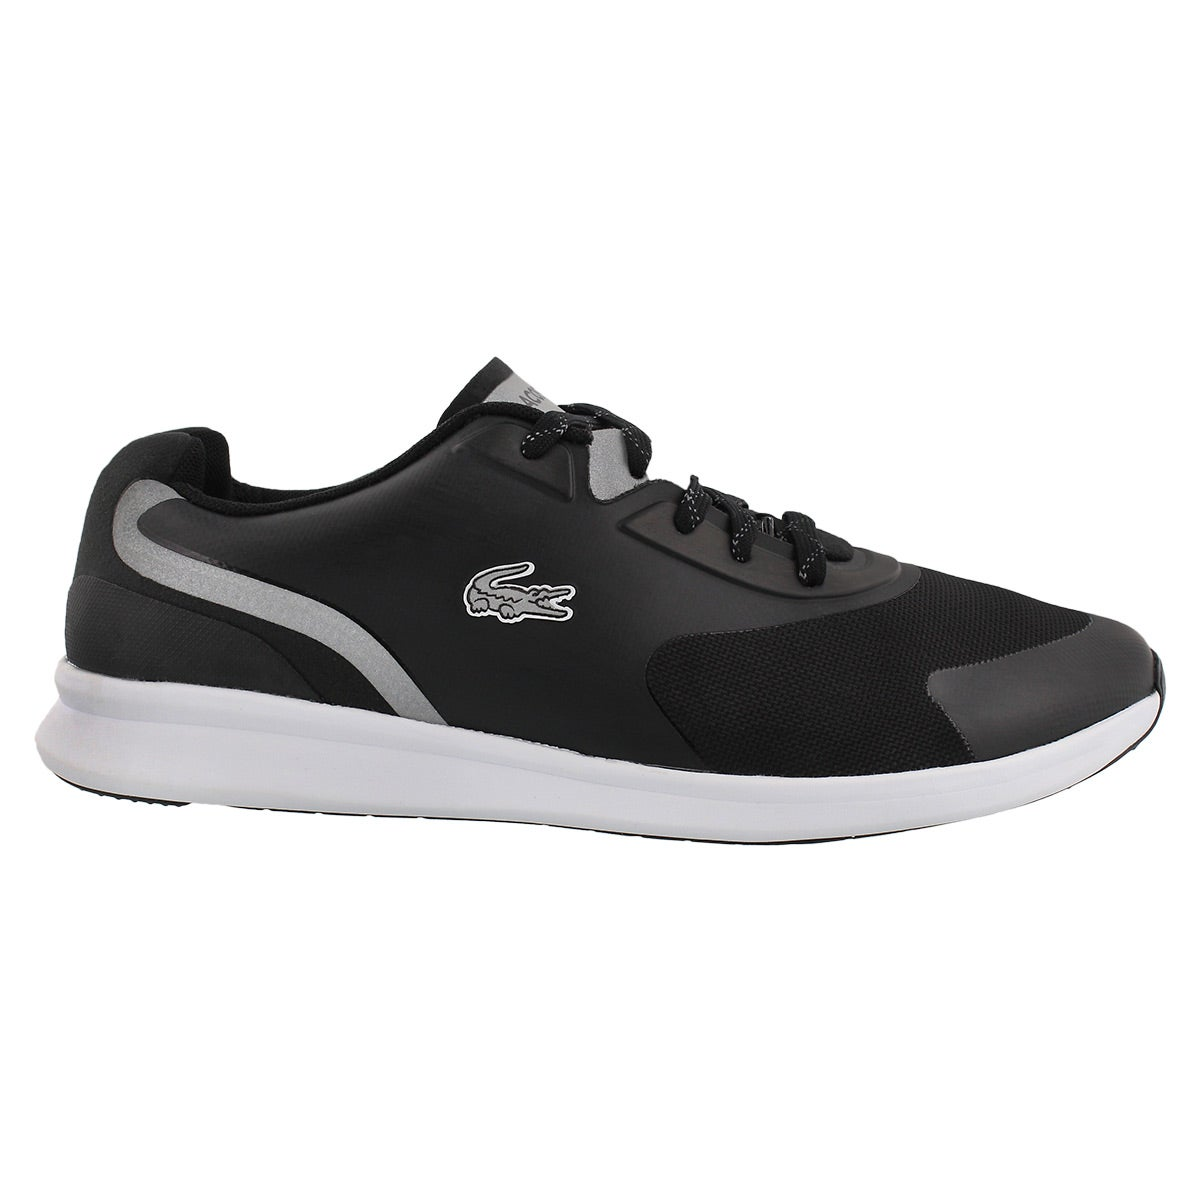 Daily Updated Lacoste LTR.01 Black for Men